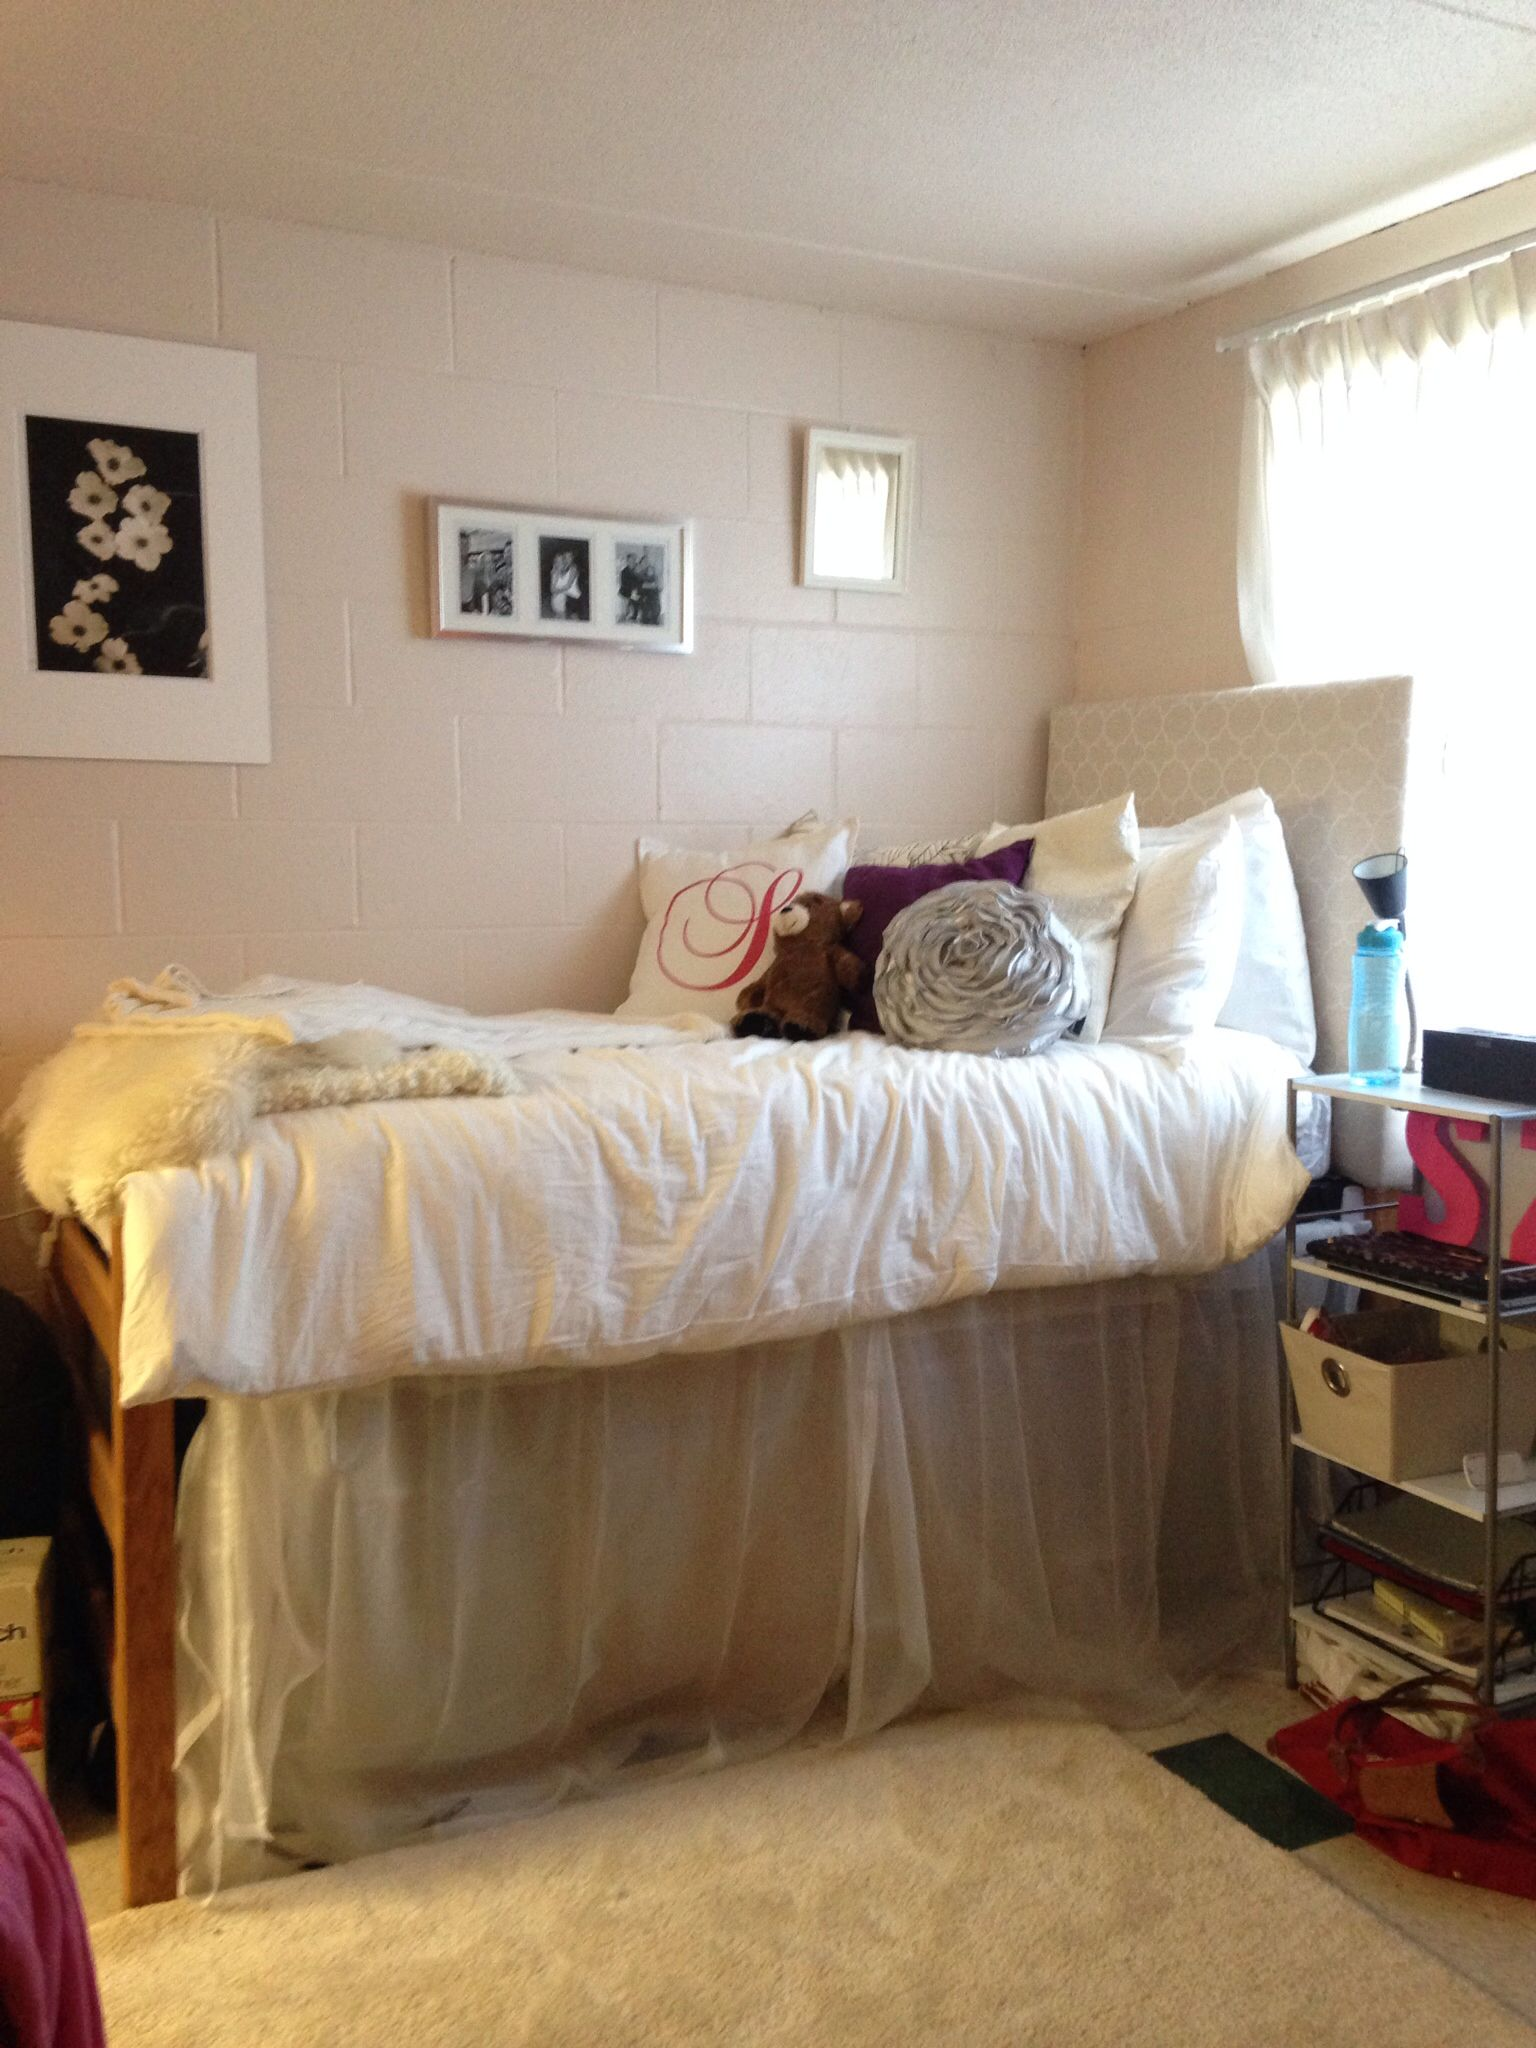 Dorm Room Beds: DIY Dorm, With Homemade Bed Skirt And Headboard, Dorm